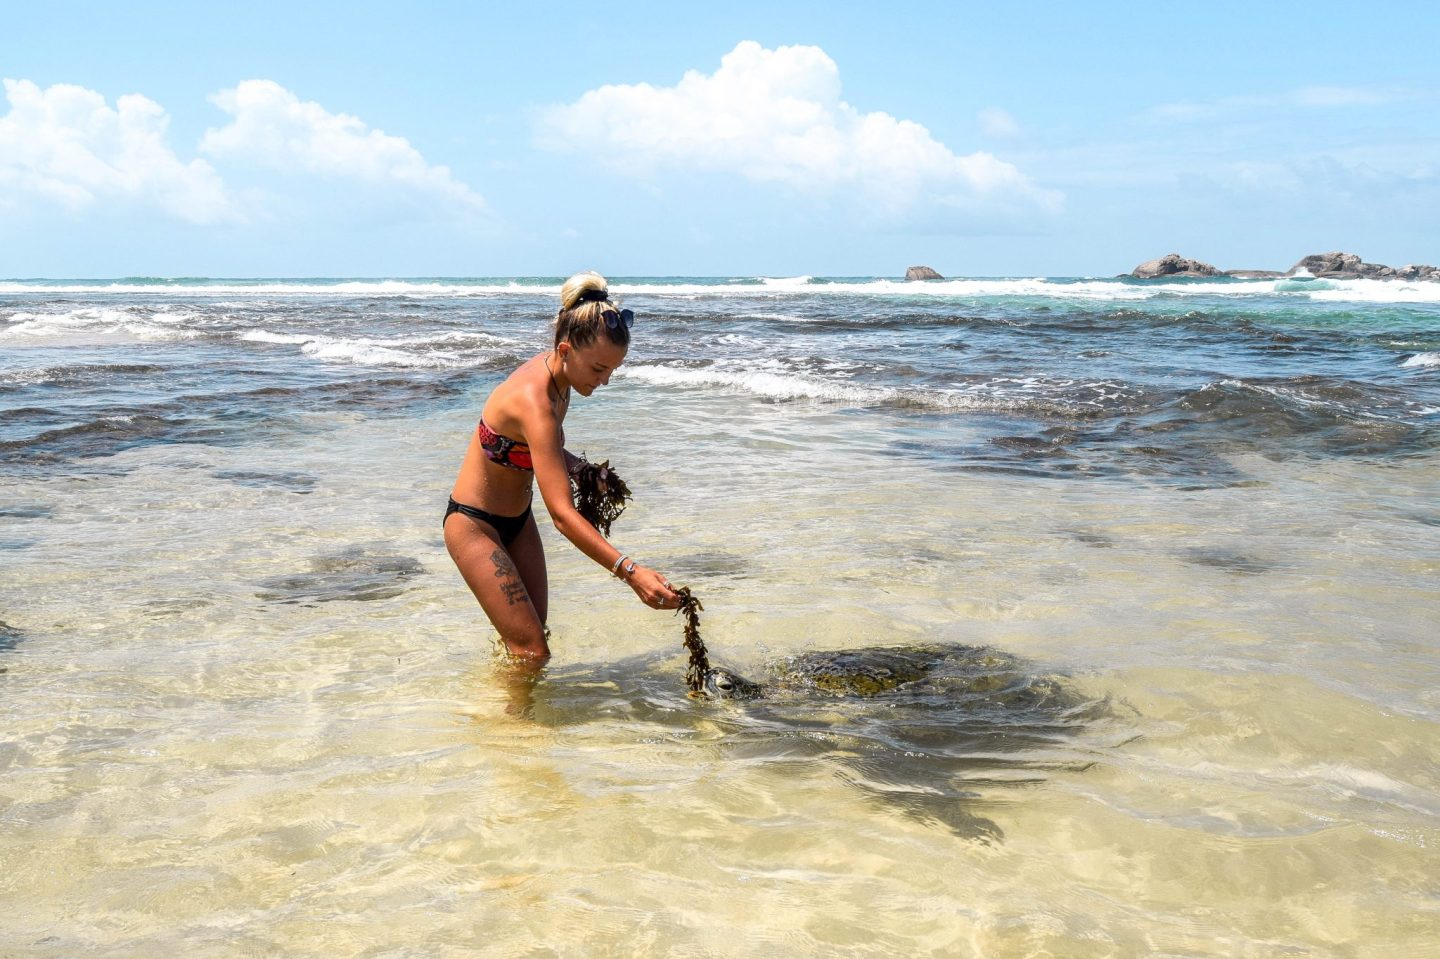 Wanderers & Warriors - Charlie & Lauren UK Travel Couple - Wild Hikkaduwa Turtles & Where To Find Them - Hikkaduwa Beach Sri Lanka